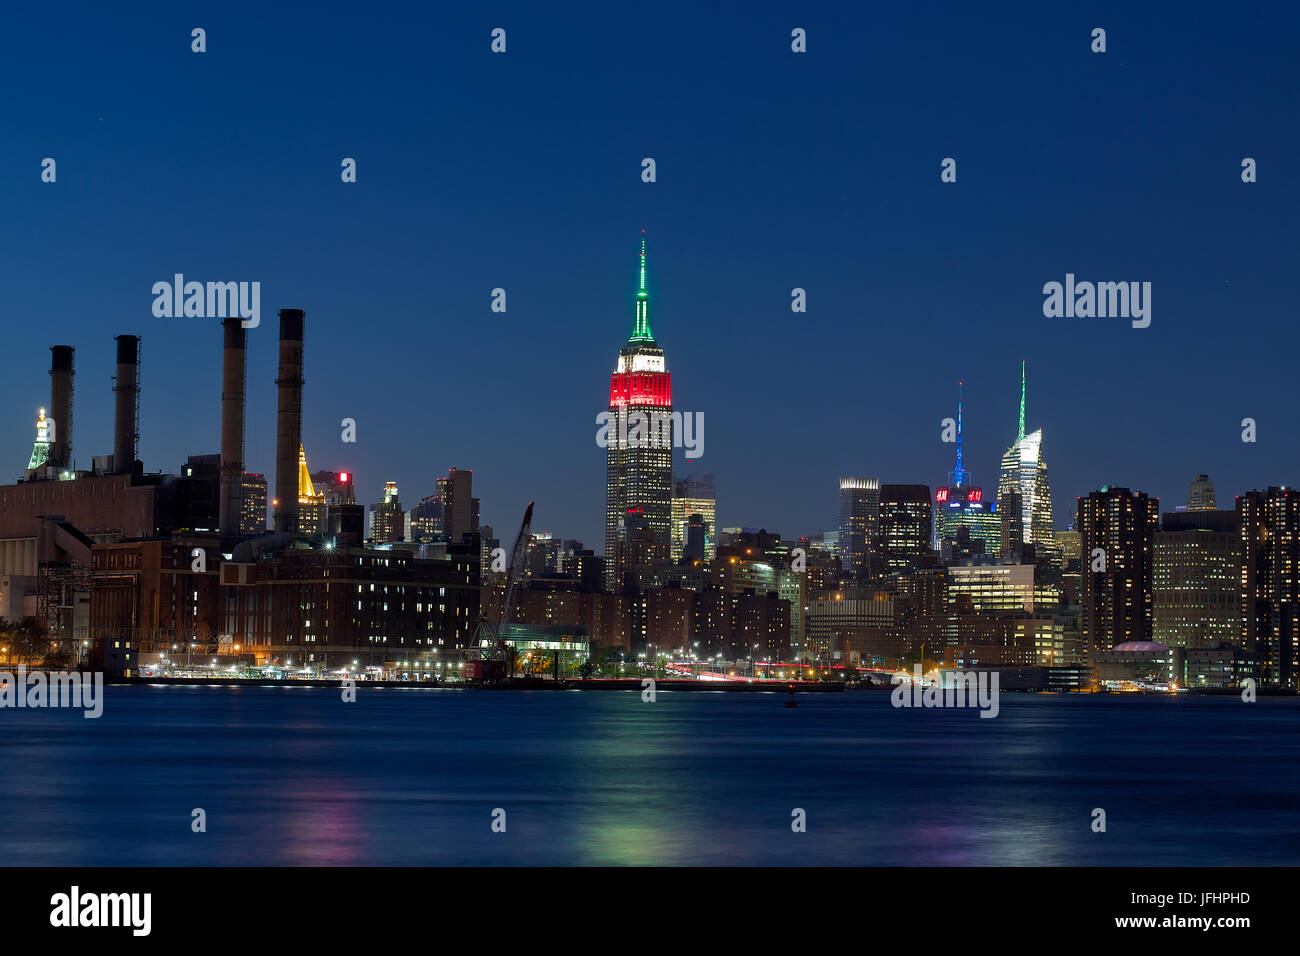 Empire State Building at night - Stock Image